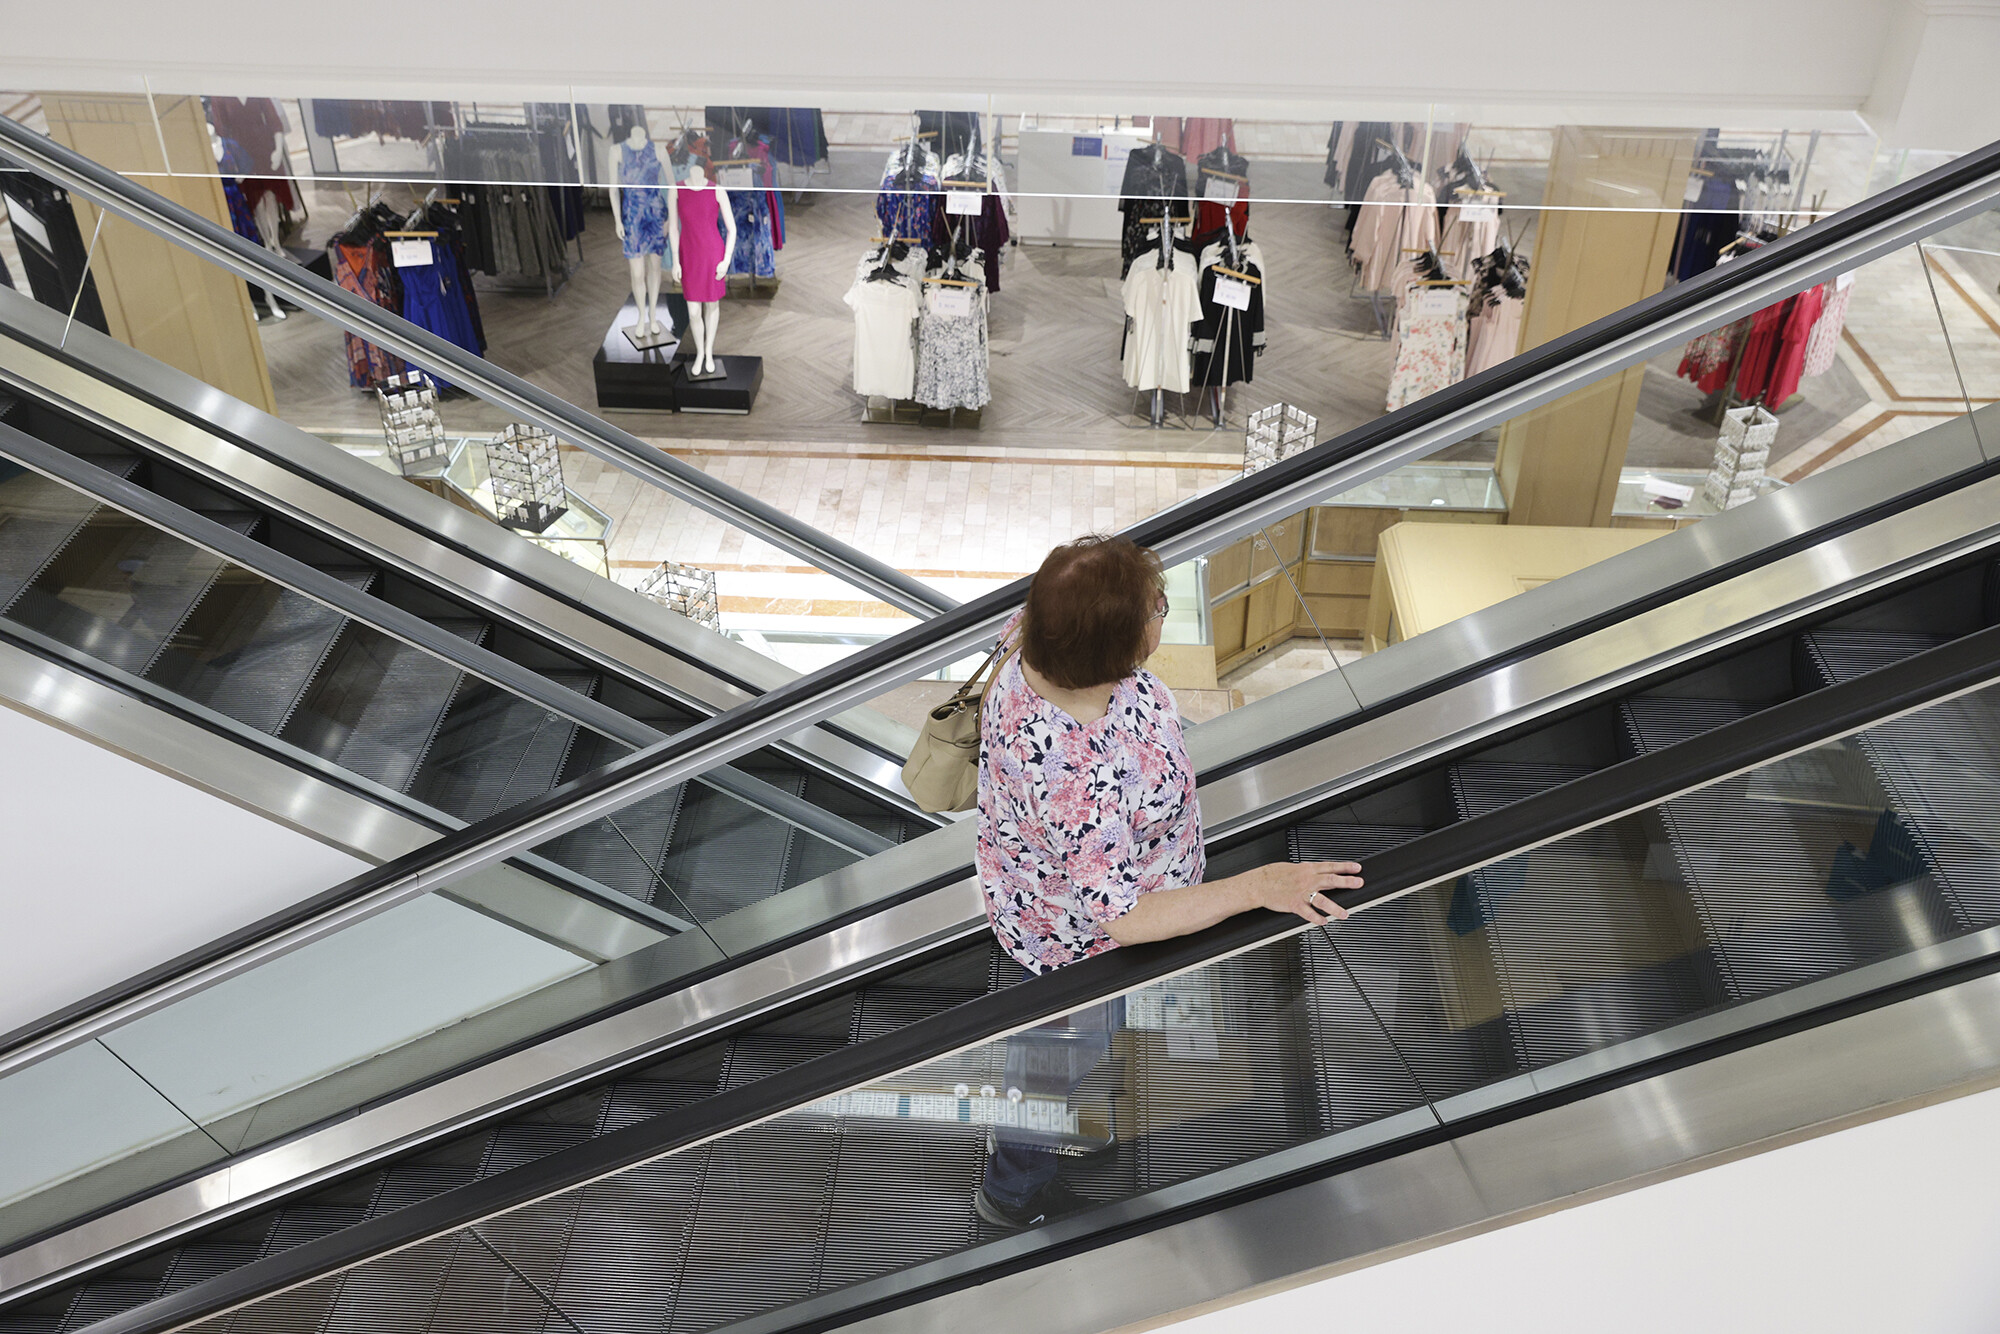 <i>Angus Mordant/Bloomberg/Getty Images</i><br/>Global shipping delays could mean shortages on the shelves as shoppers gear up for back to school shopping.